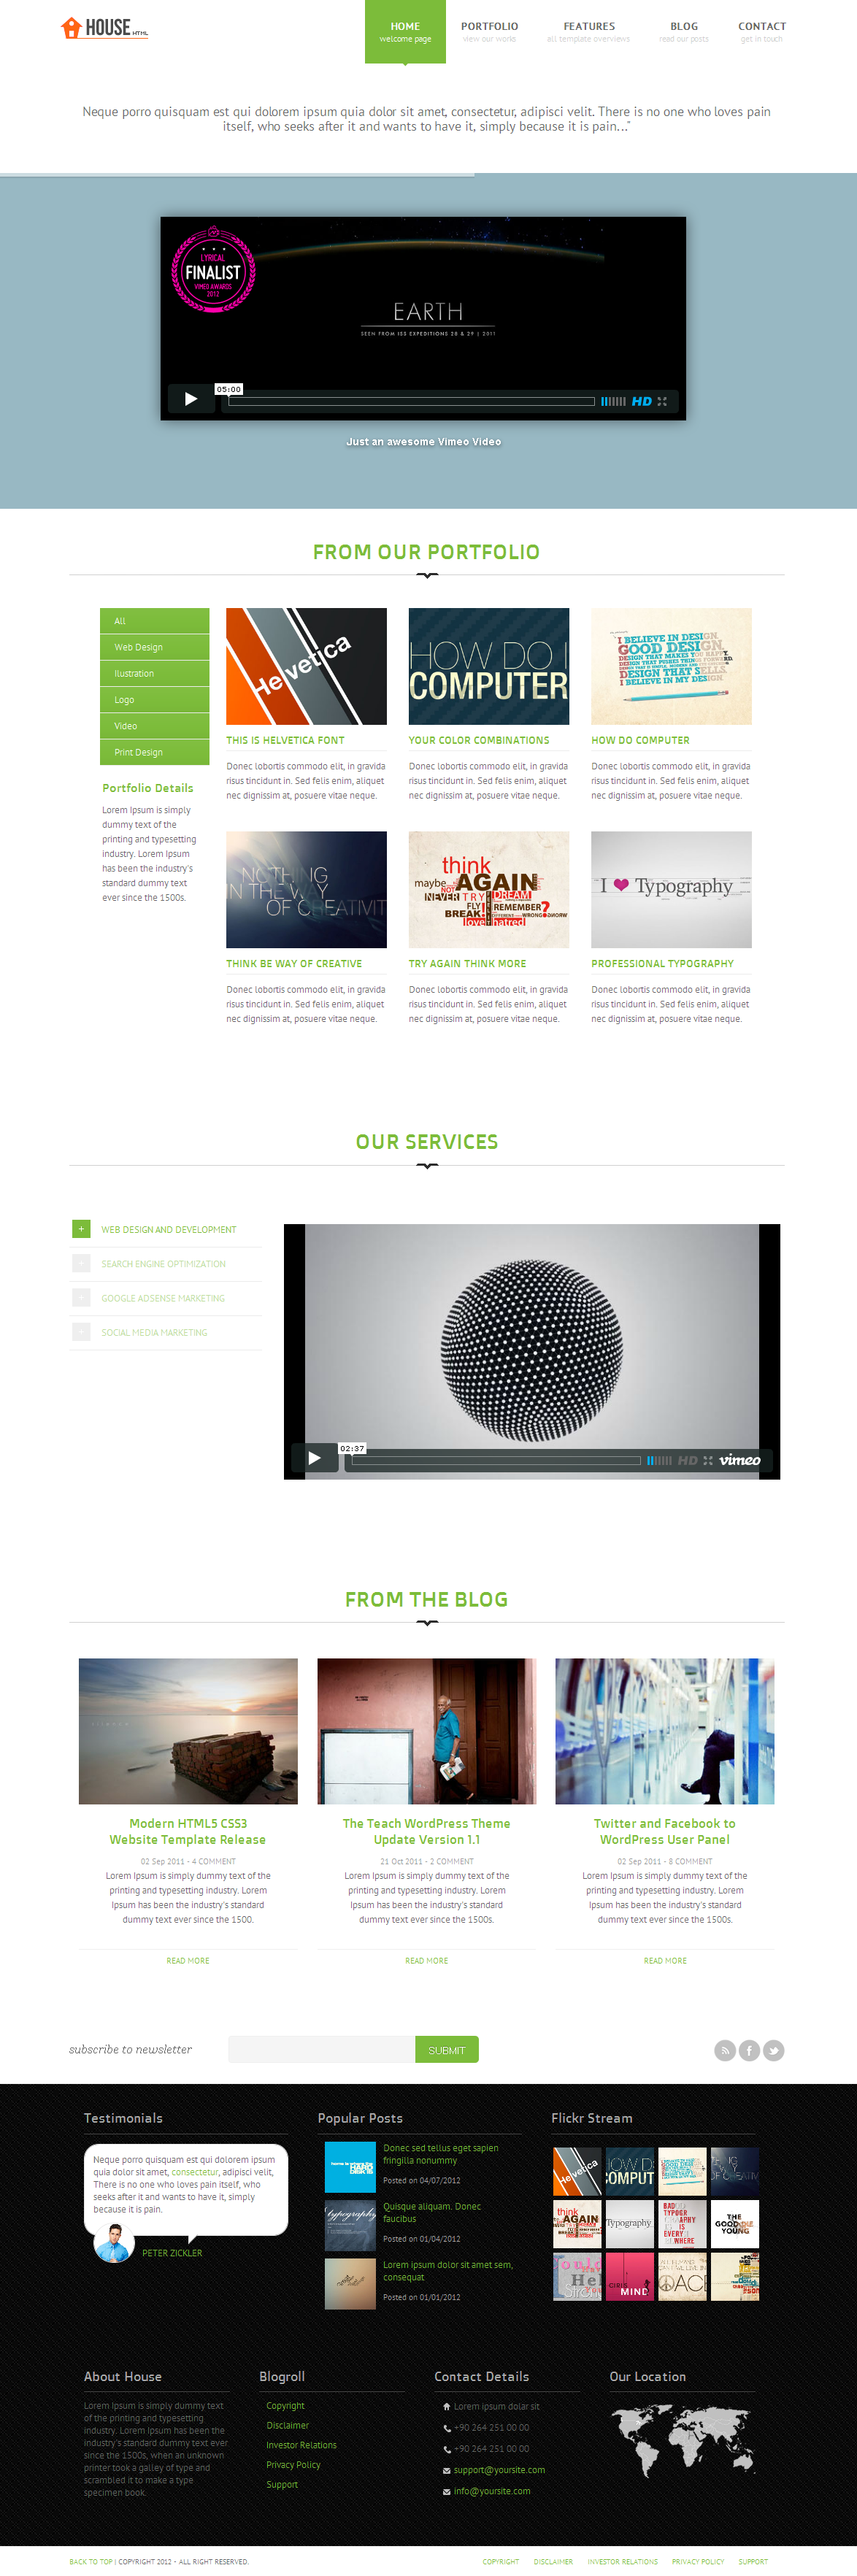 House - Clean HTML Website Template